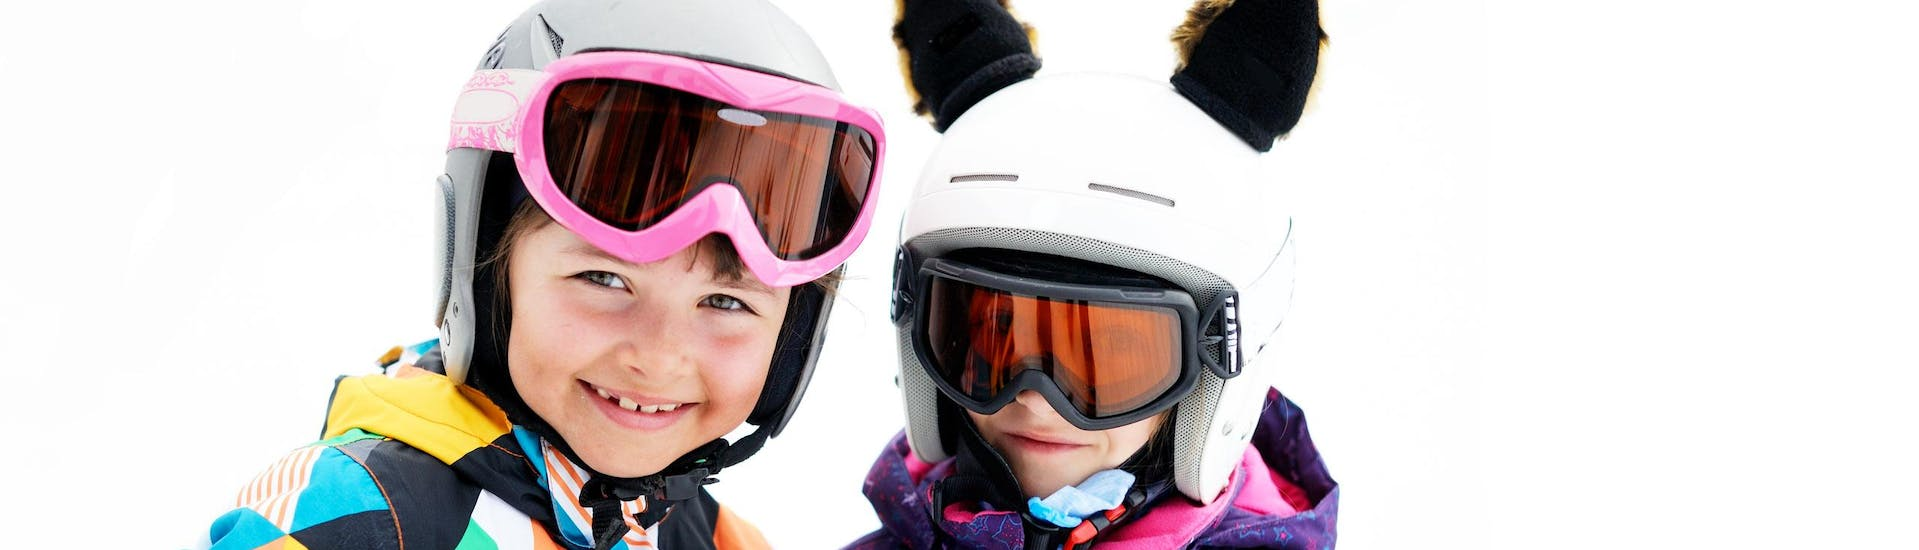 Two young children smiling at the camera during one of the Kids Ski Lessons (4-15 y.) for Beginners organised by Alpin Skischule Patscherkofel.